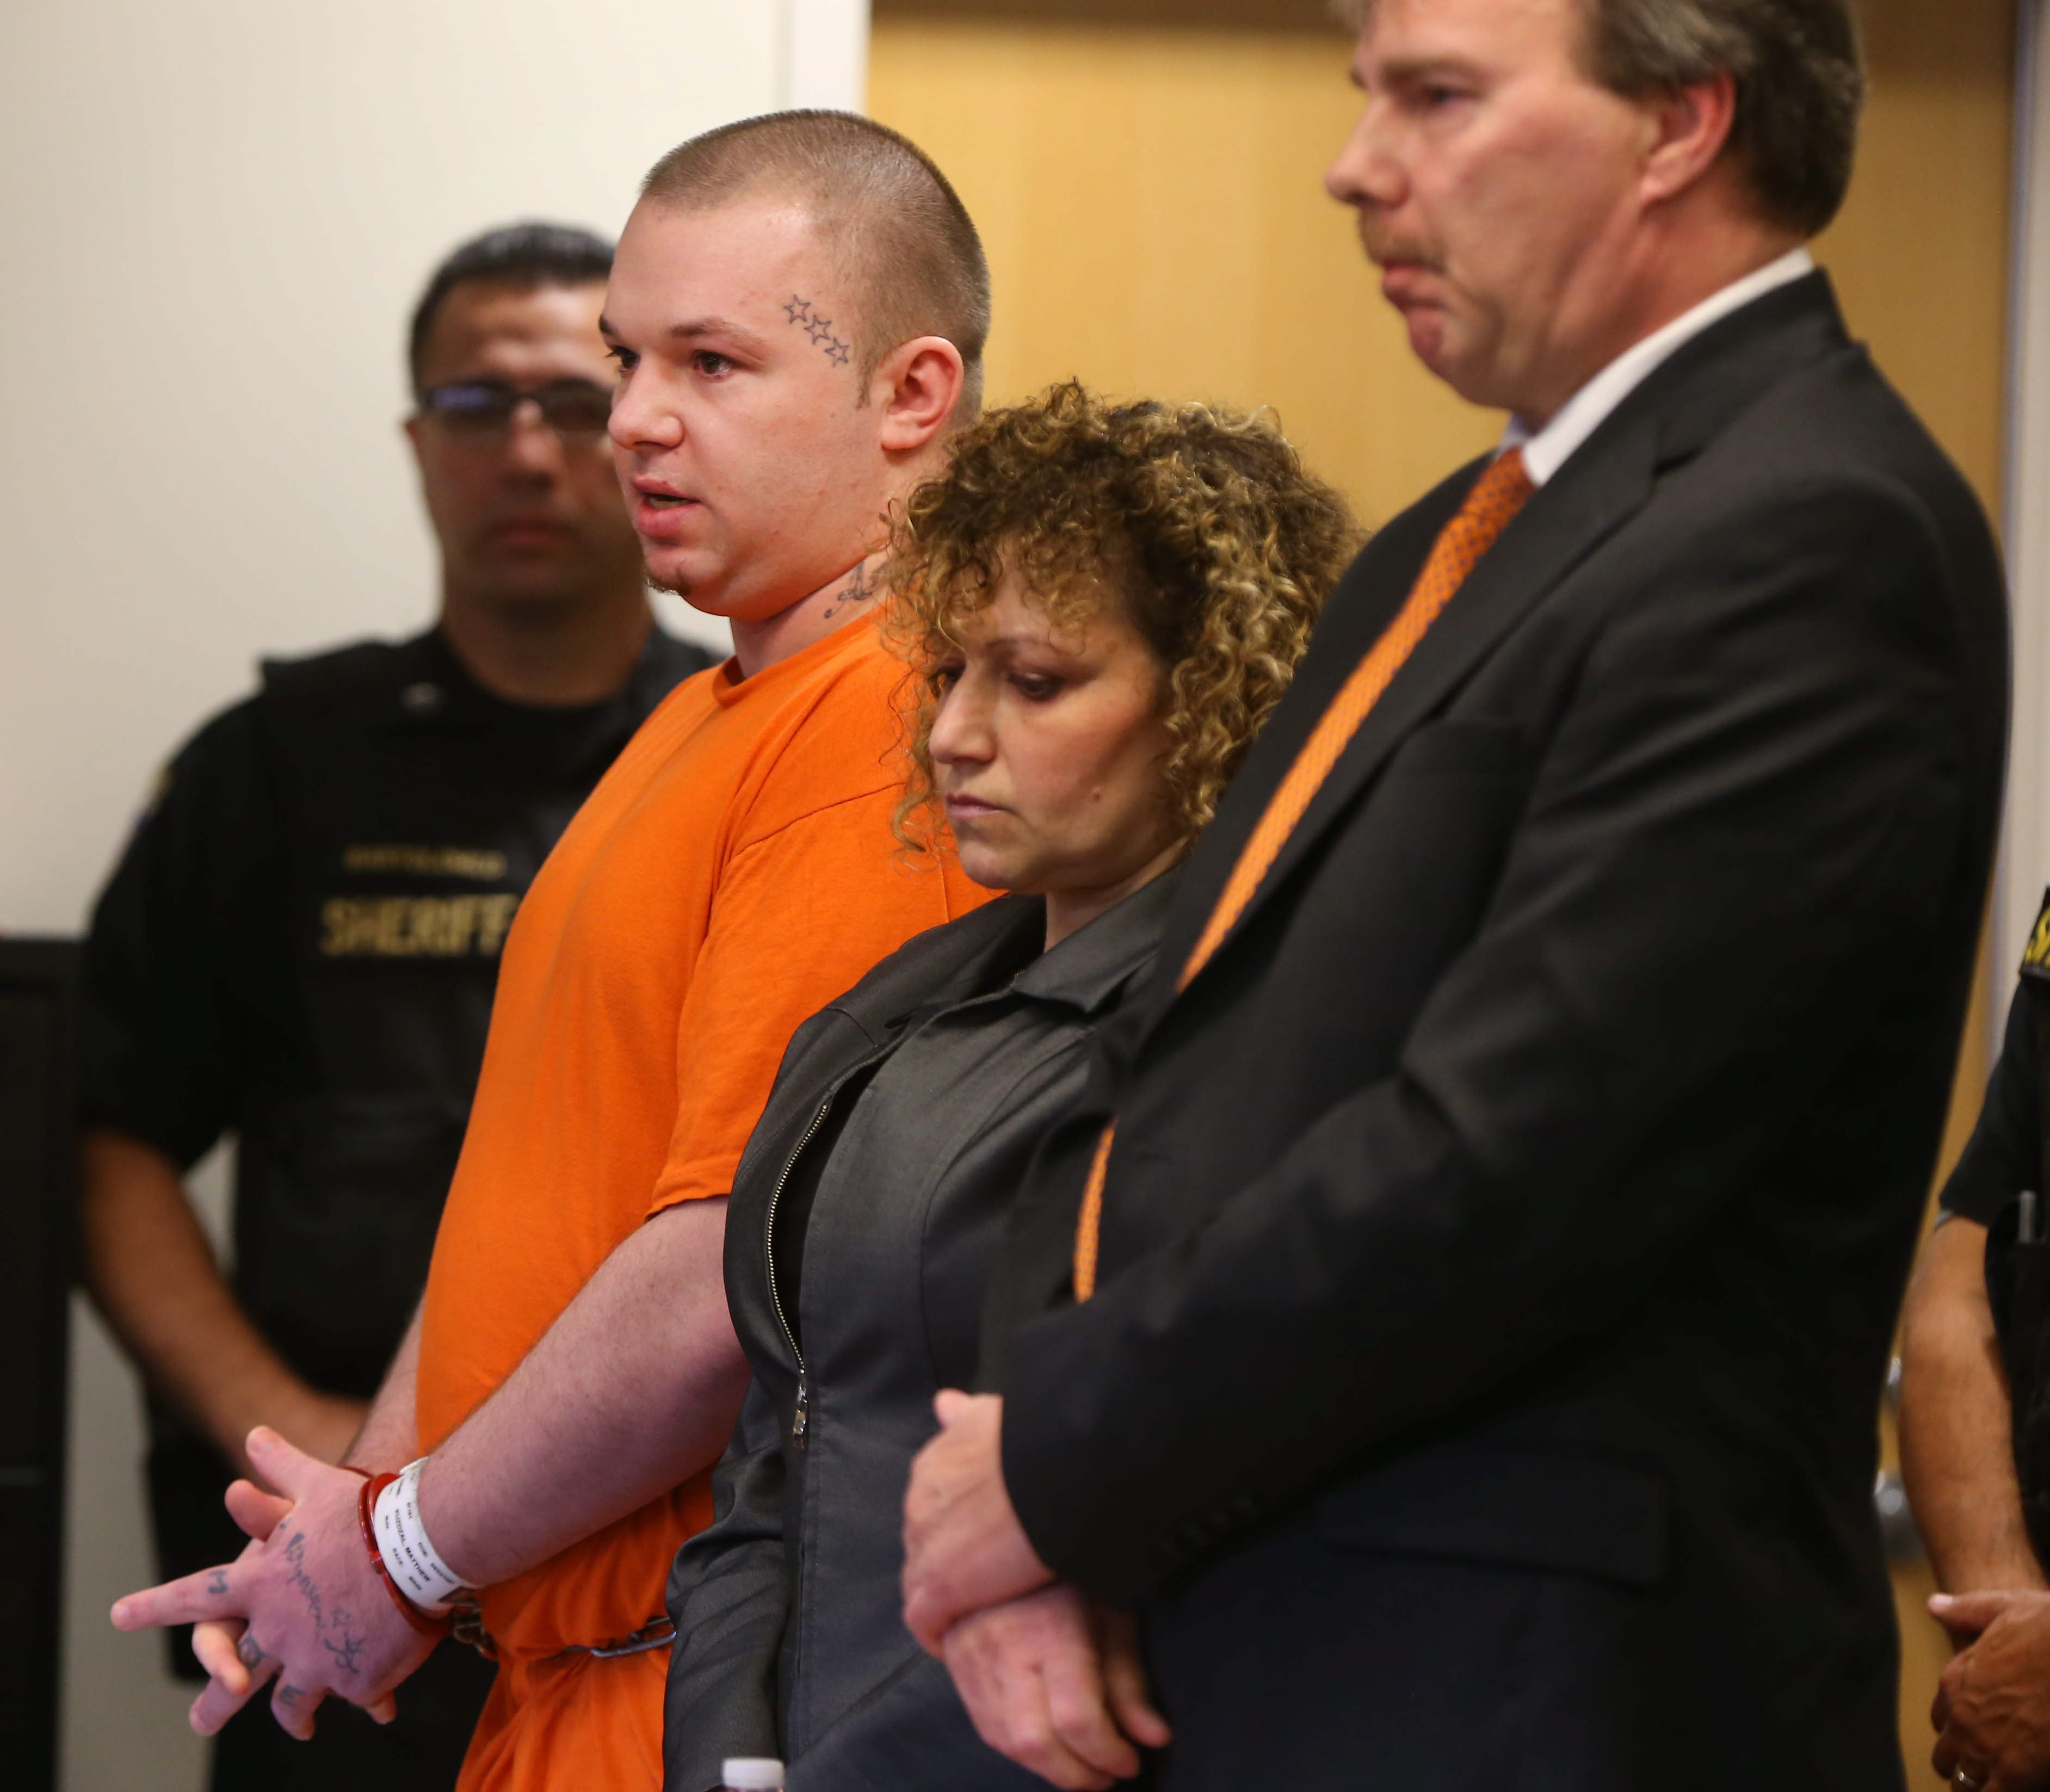 Matthew Kuzdzal speaks to the court with his attorneys Emily Trott and Robert Cutting during his sentencing in front of Judge Christopher J. Burns in Erie County Court Tuesday, October 27,  2014.  (Mark Mulville/Buffalo News)